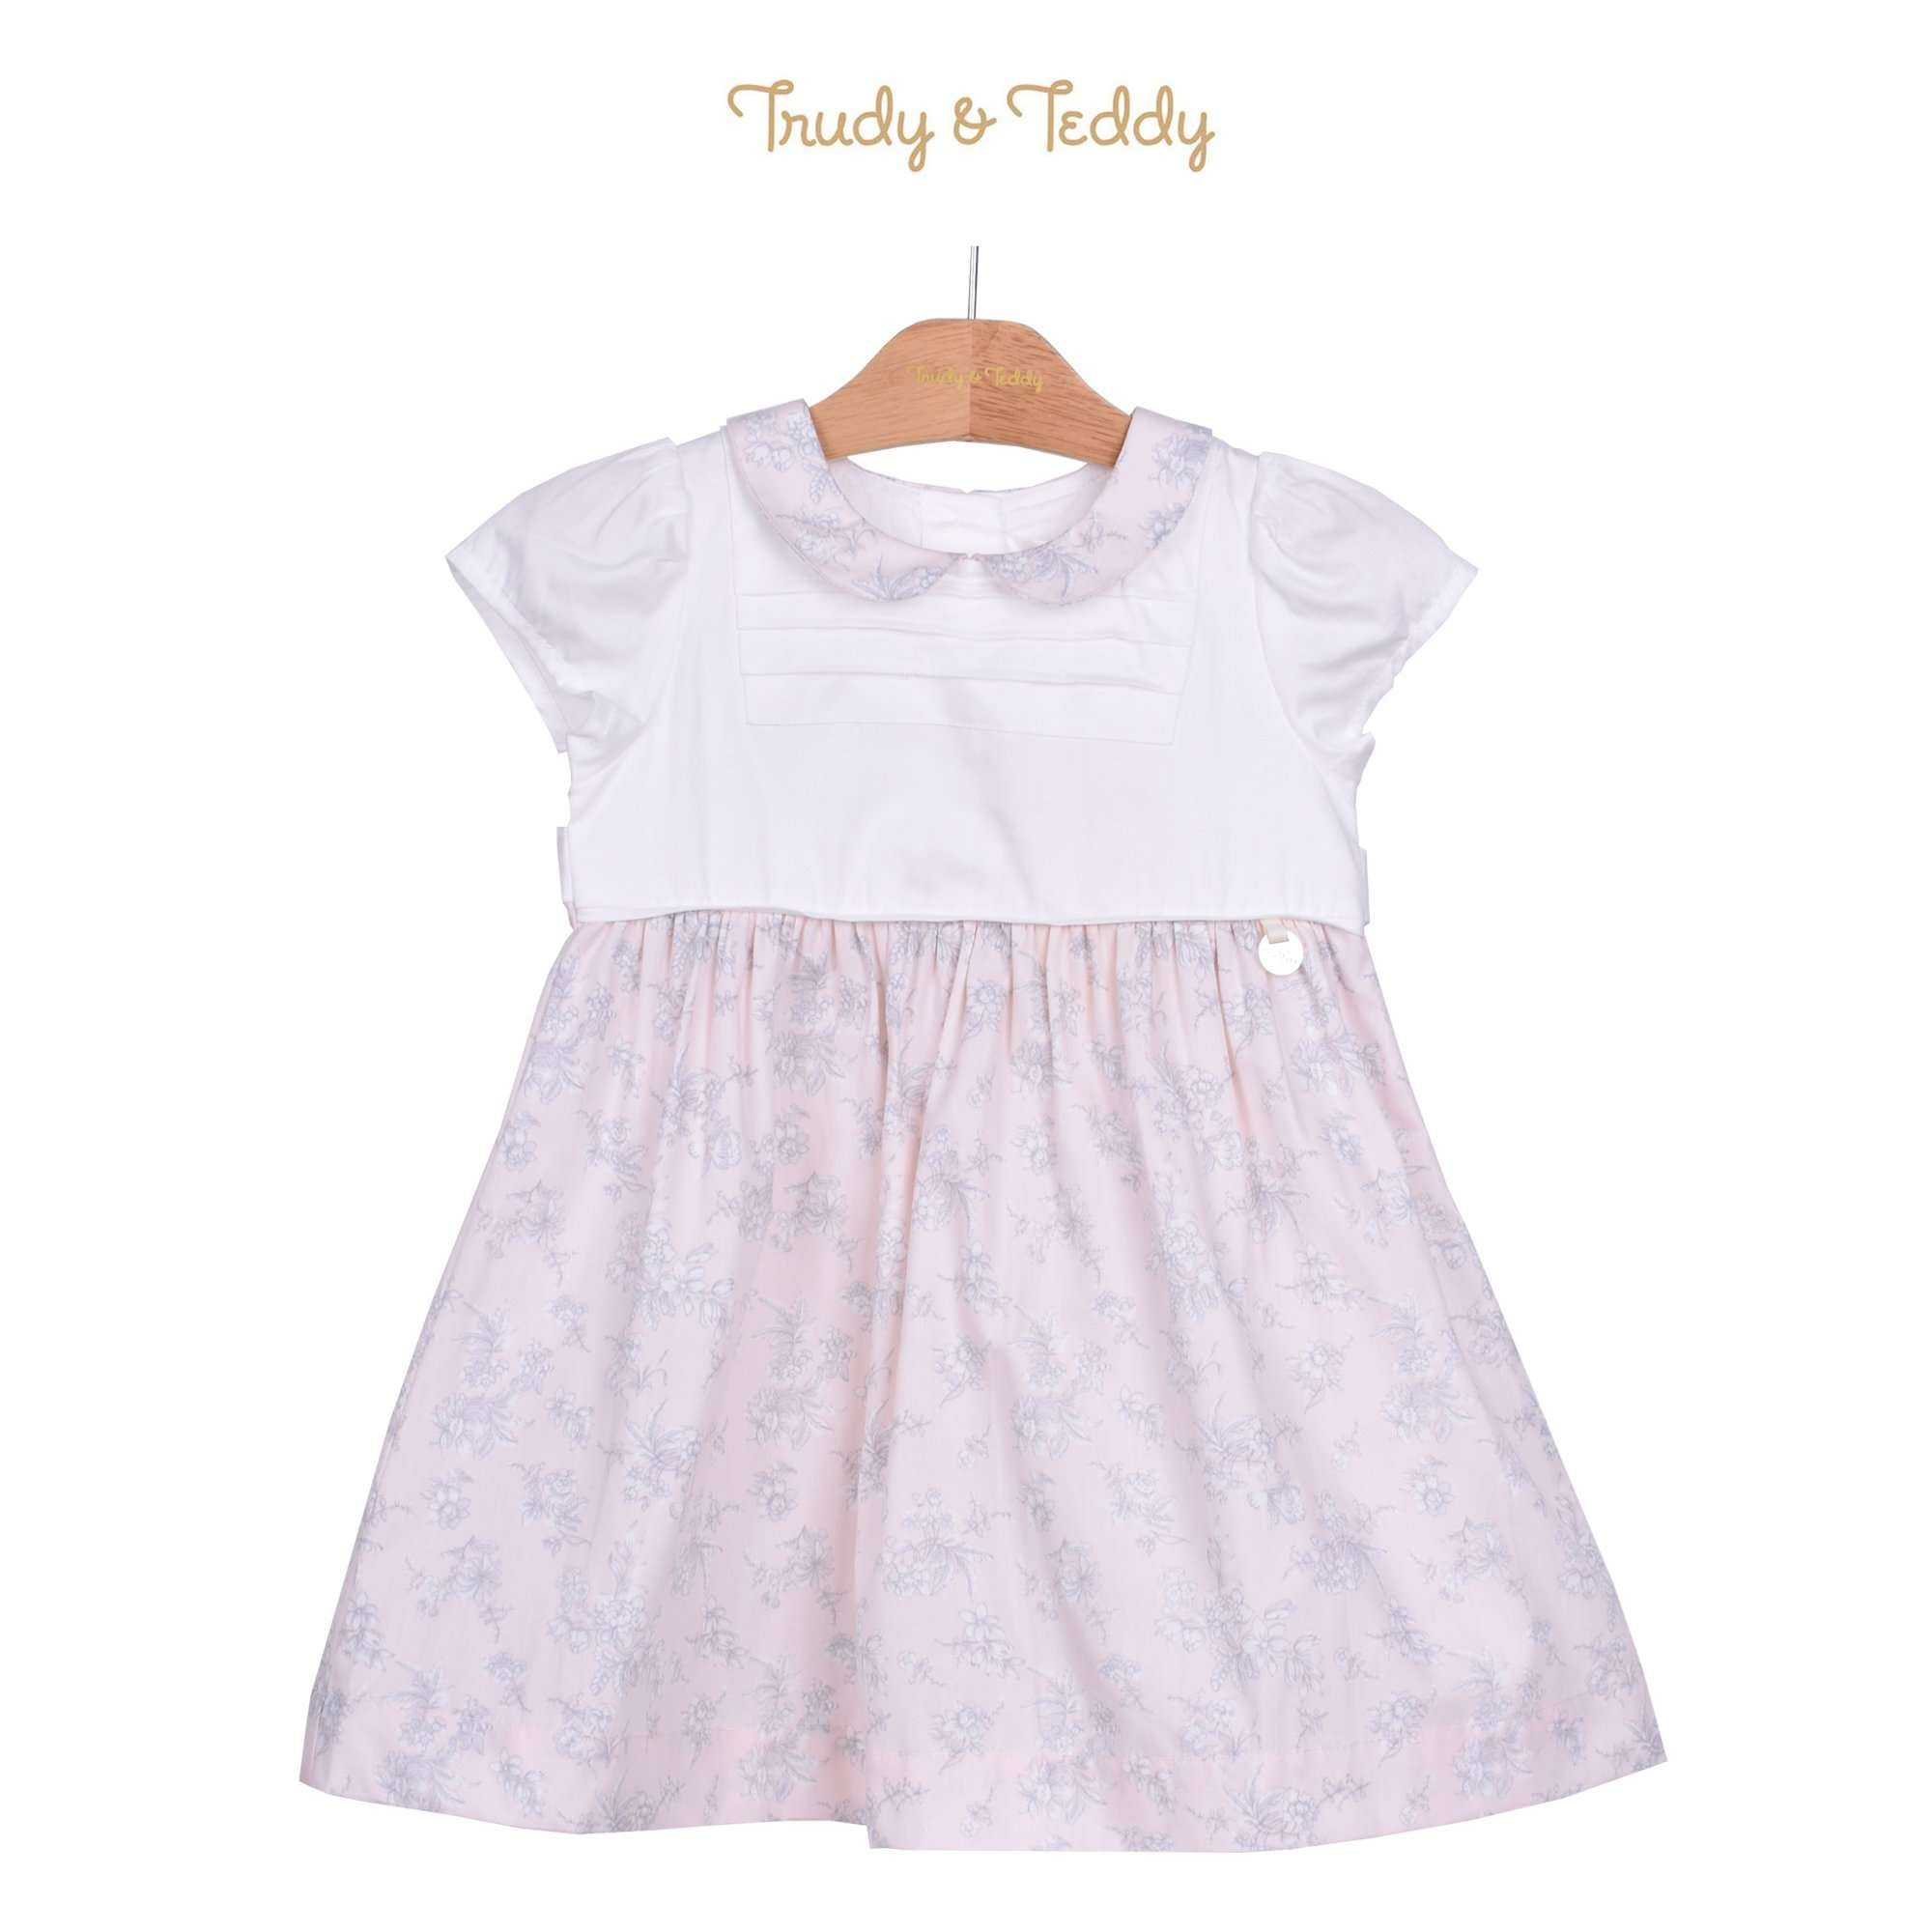 Trudy & Teddy Toddler Girl Short Sleeve Dress - Light Peach 815144-312 : Buy Trudy & Teddy online at CMG.MY